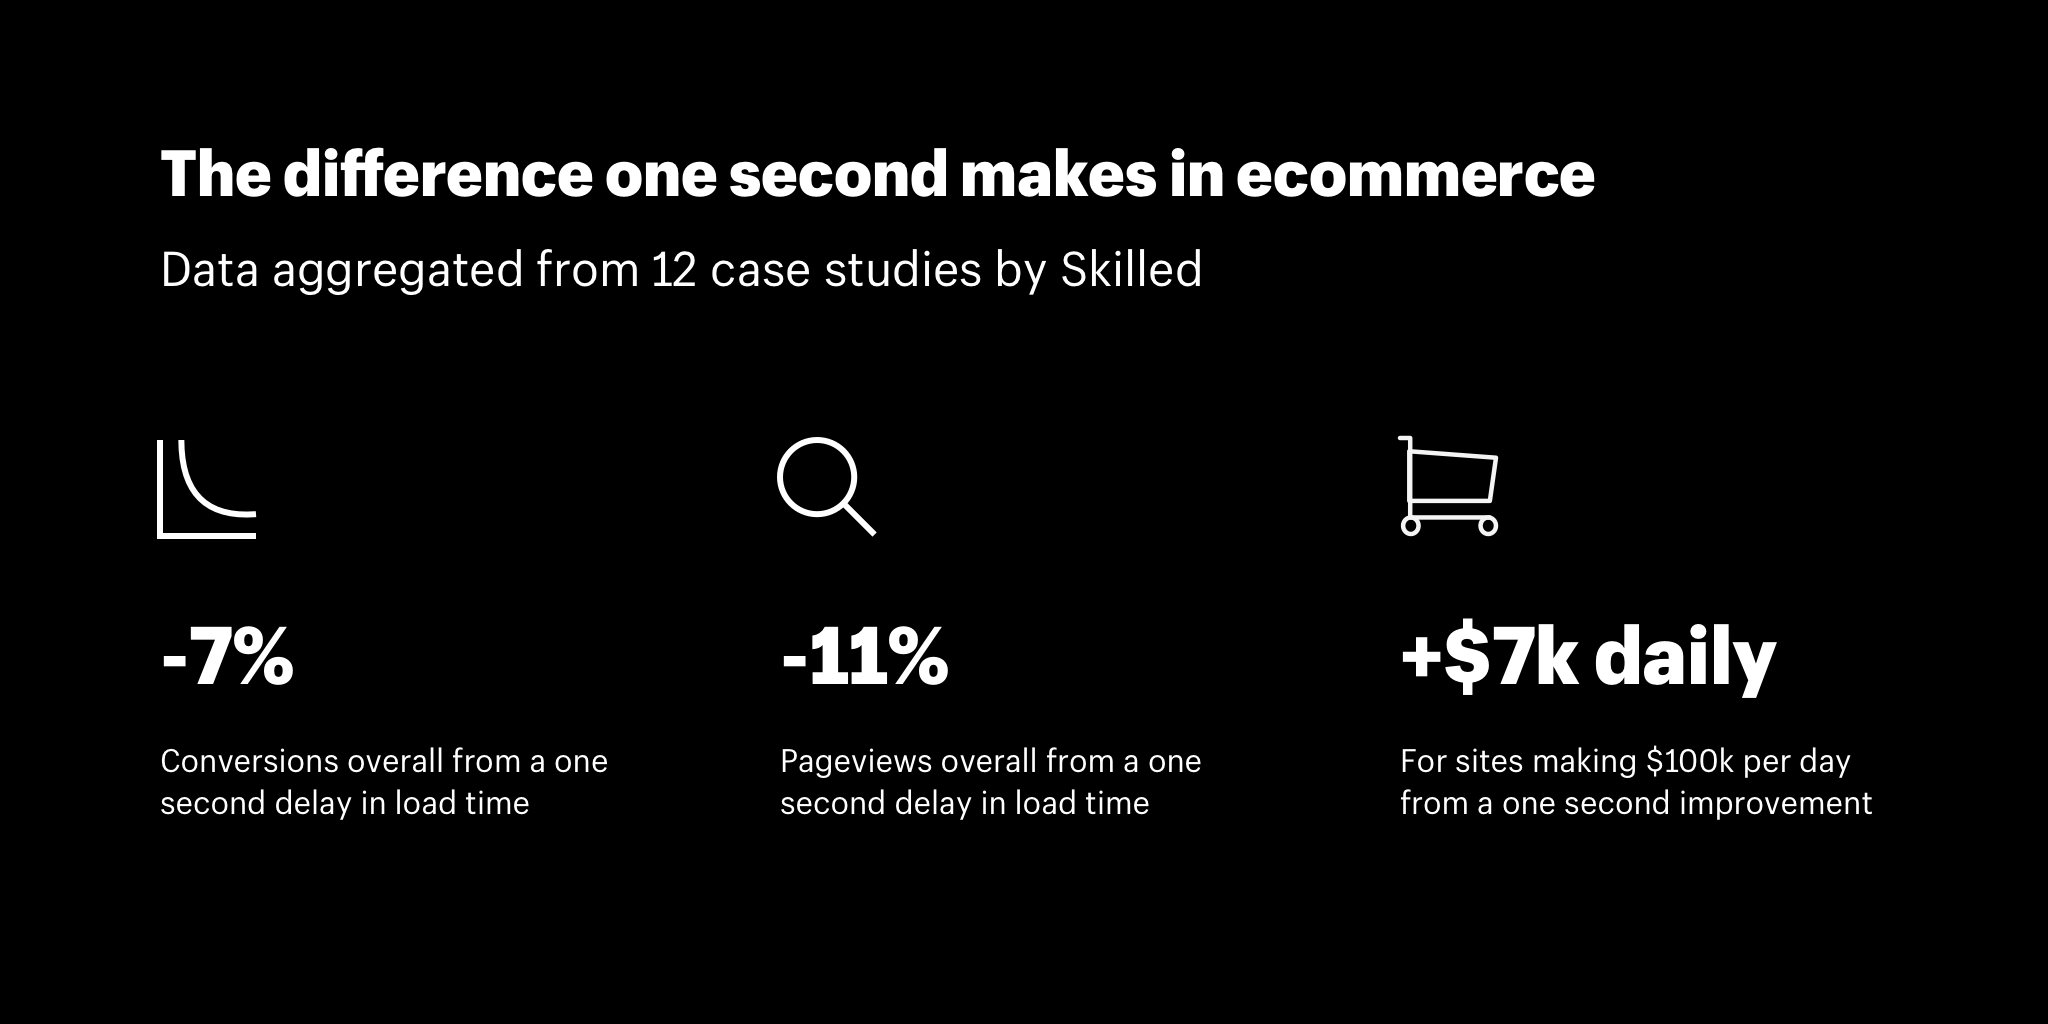 The difference one second makes in ecommerce conversion rates, pageviews, and sales